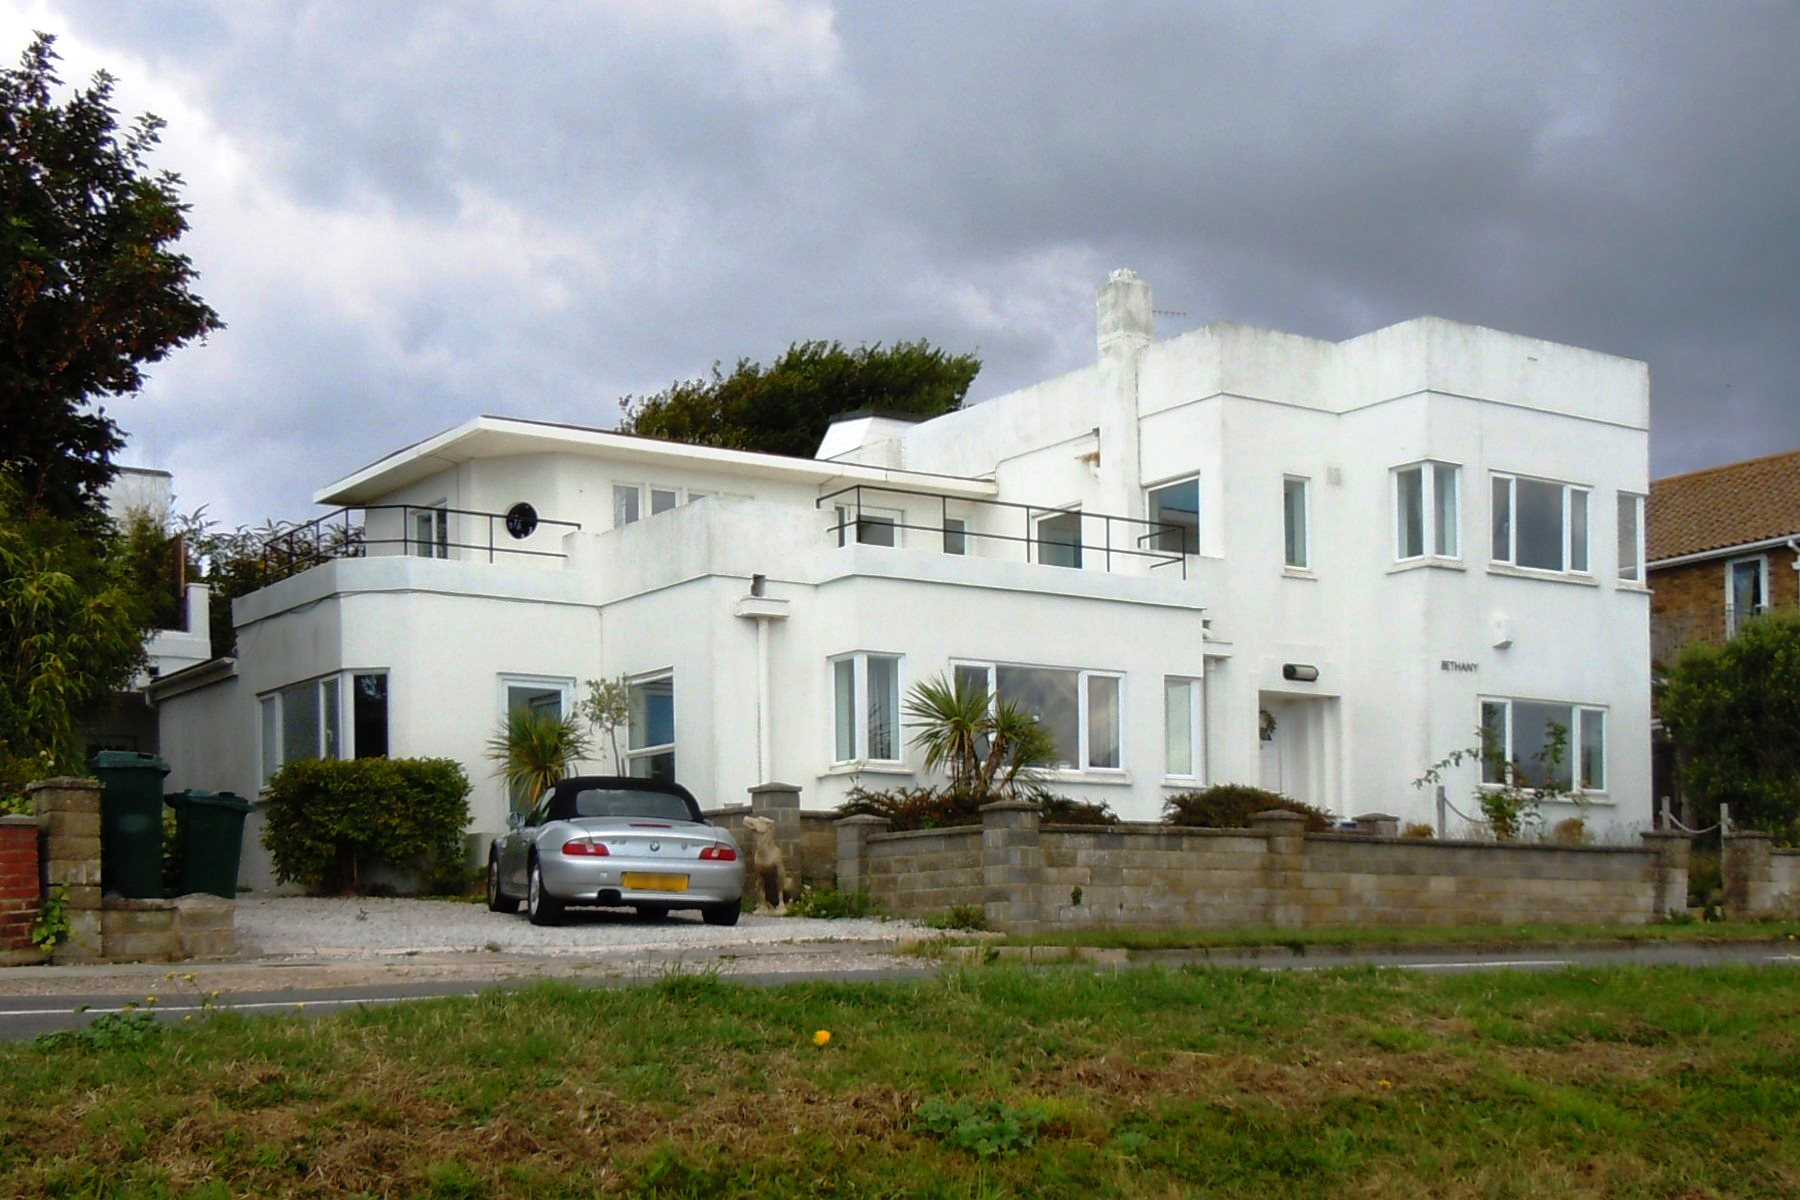 File 1934 Cubist House By Connell Ward Lucas Arundel Drive West Saltdean